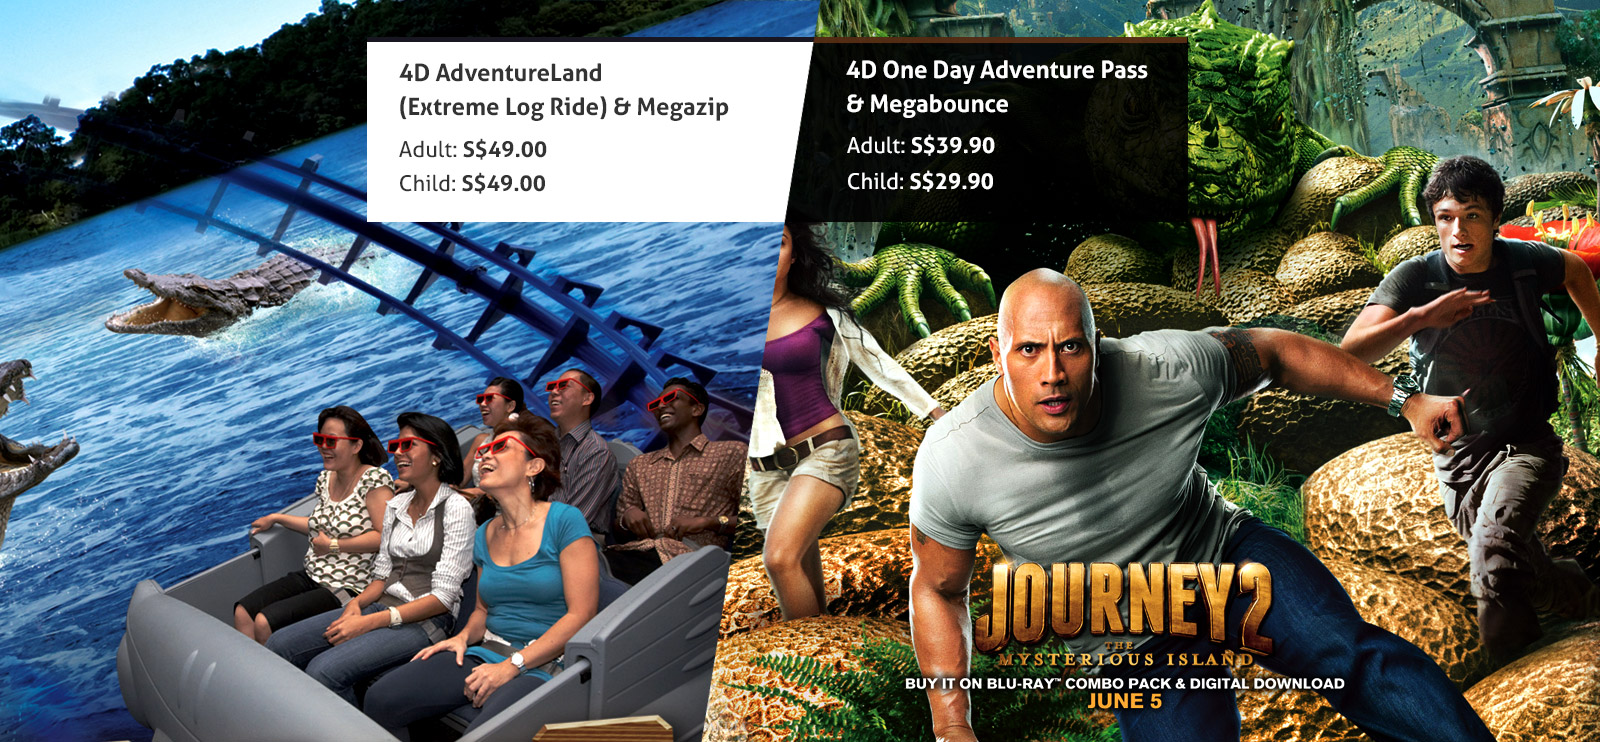 Extreme long ride and Megazip tickets offer 4d adventureland singapores best theme park all ages S$49